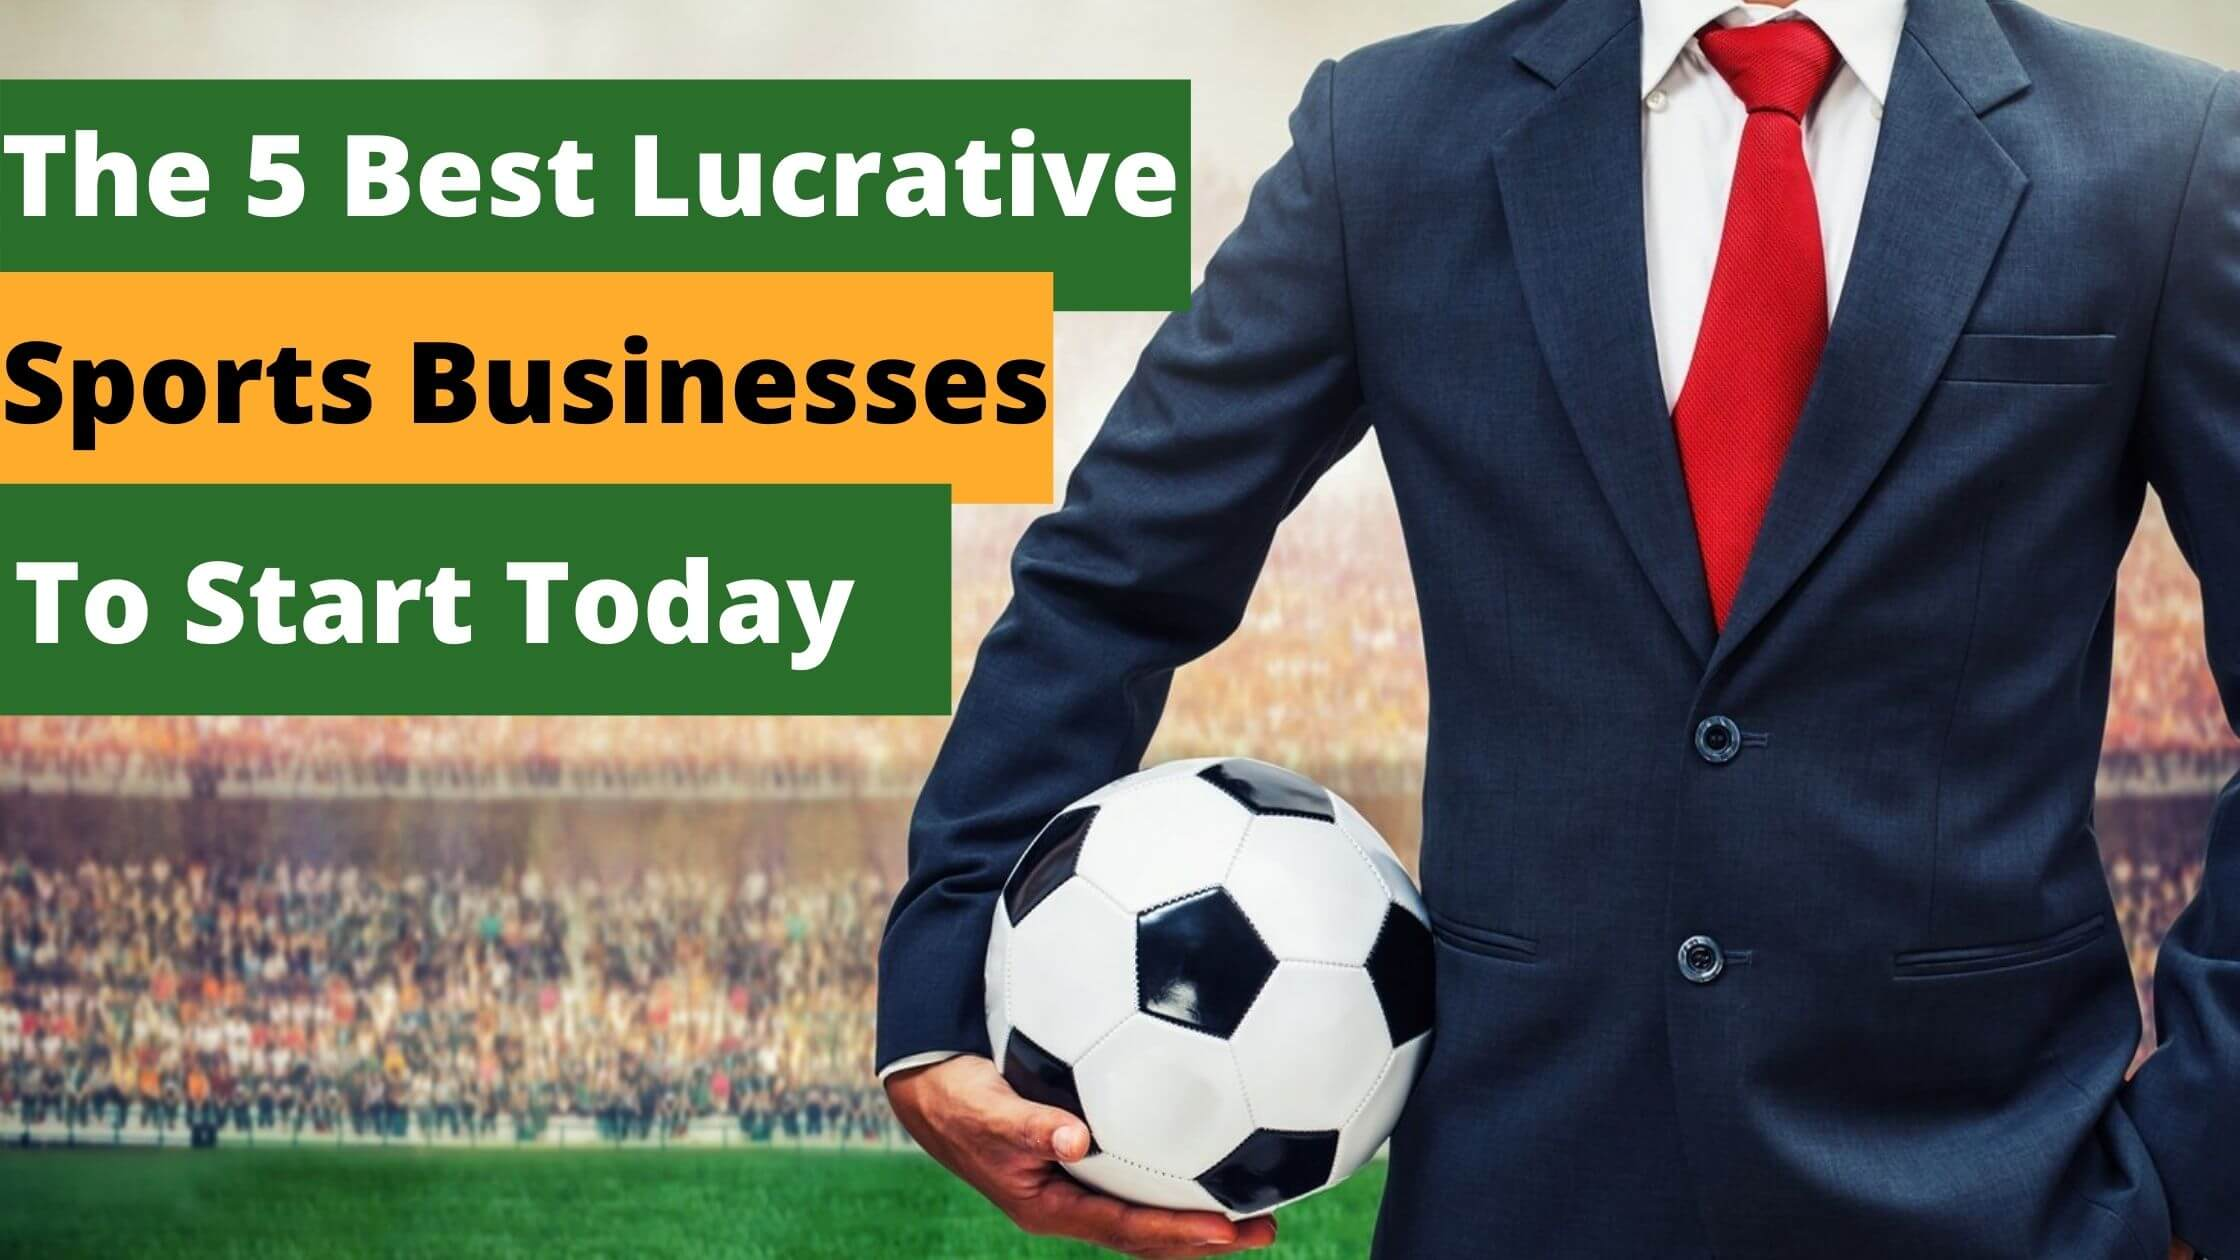 Lucrative Sports Businesses